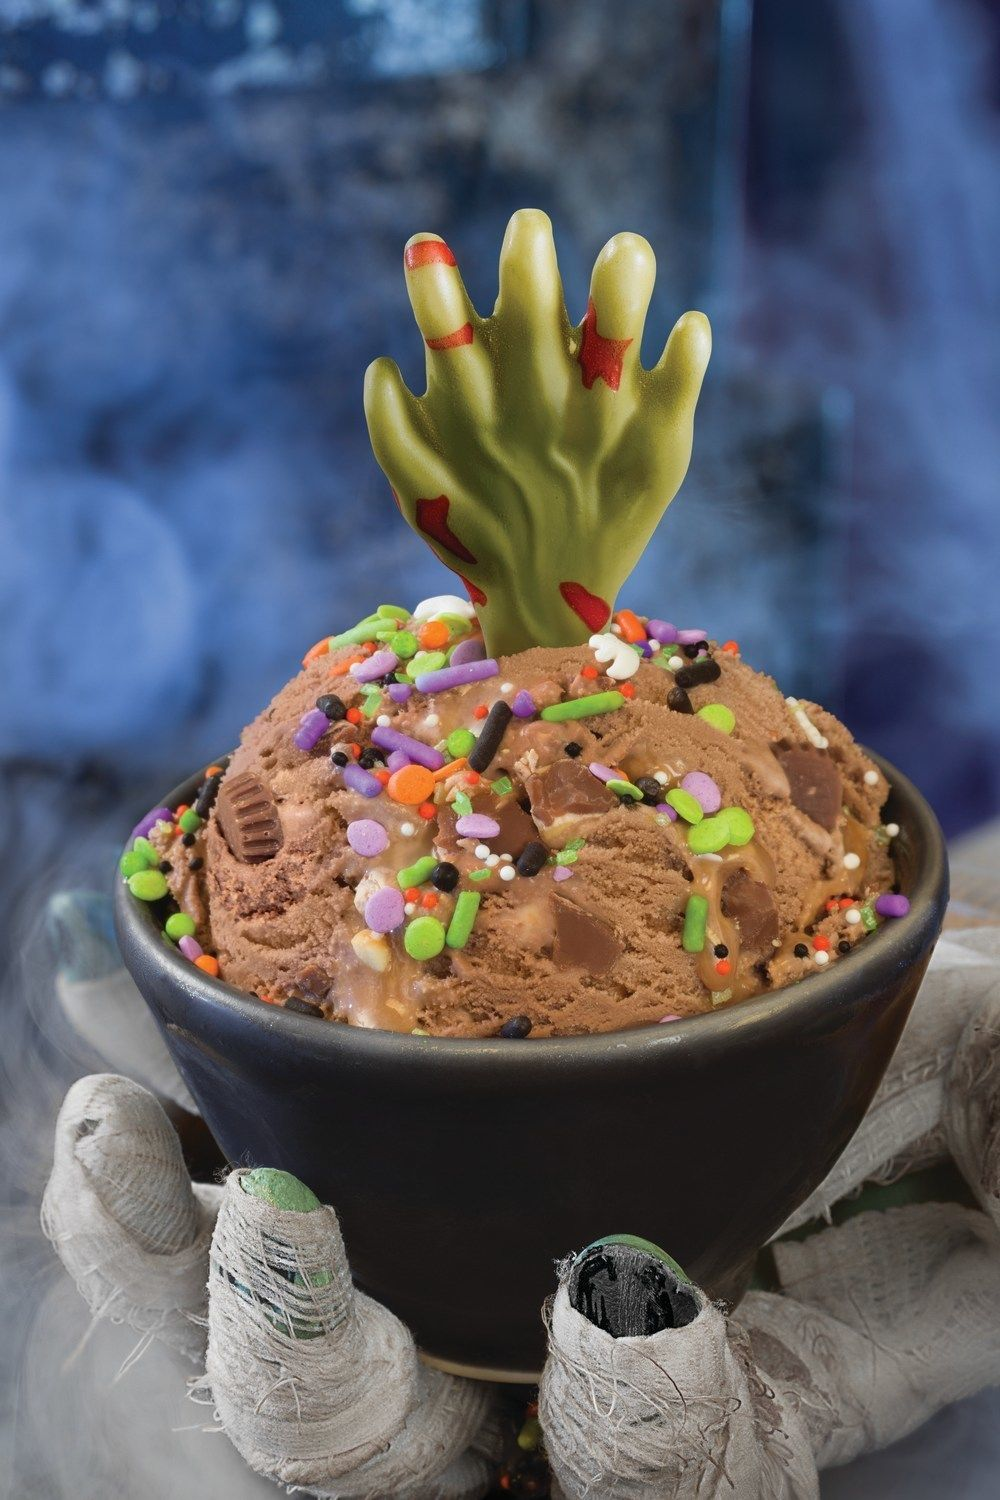 Baskin-Robbins' Newest Halloween Treat Comes With A White Chocolate Zombie Hand